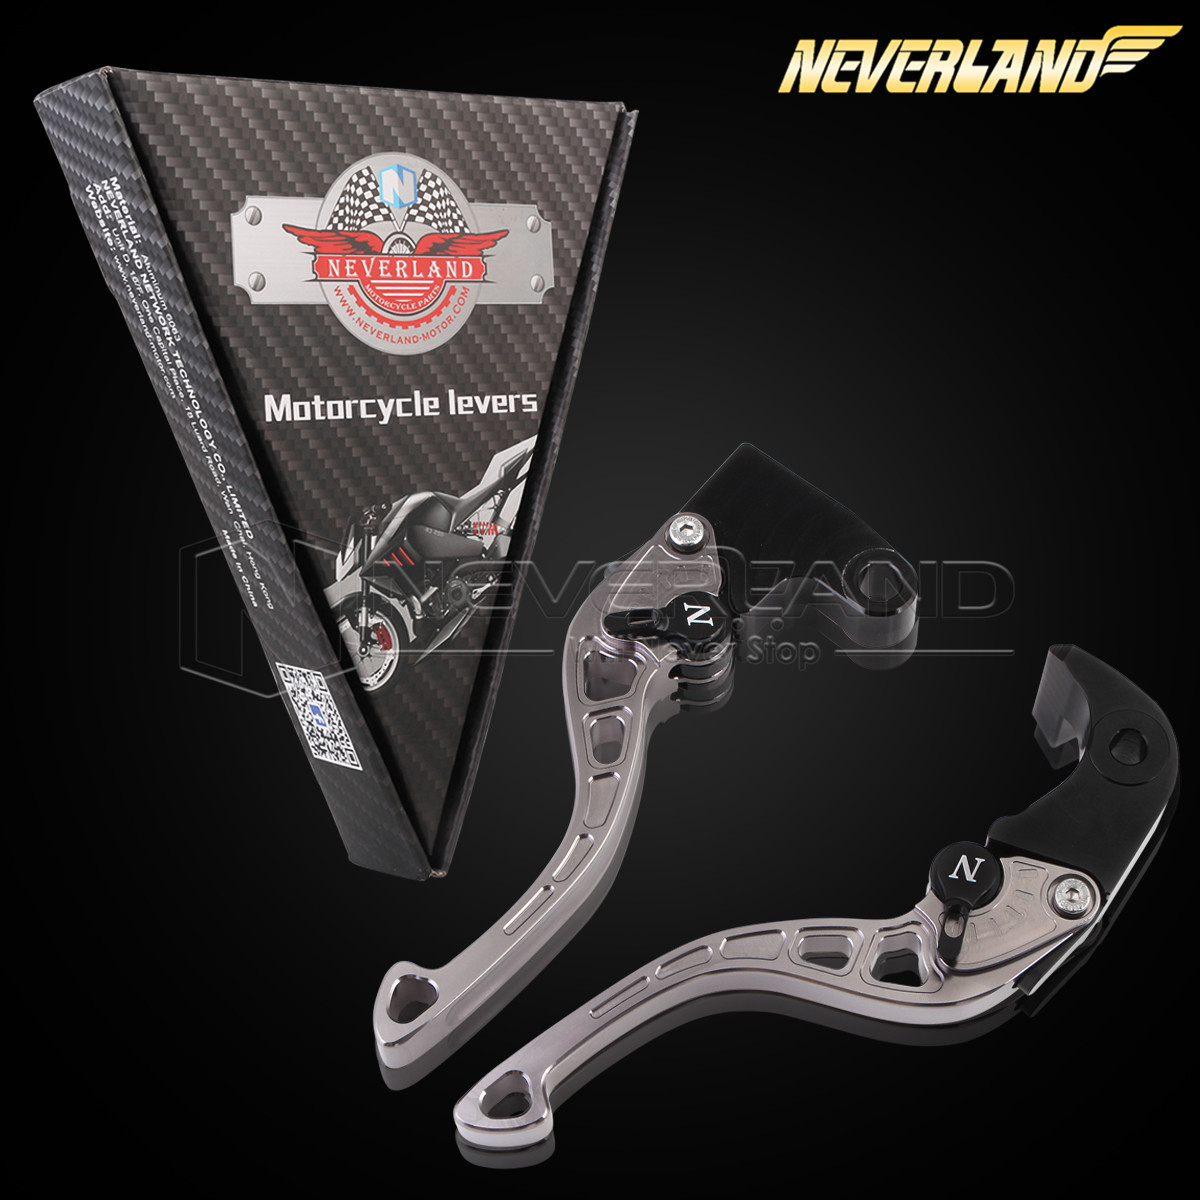 CNC Short Motorbike Brakes Adjustable Clutch Brakes Levers for YAMAHA FZ1 FAZER 2006-2013 MT-07/FZ-07 MT-09/FZ-09/SR 14-2015 D25 new brake clutch levers cnc adjustable motorbike lever for yamaha fz6 fazer fz6r fz8 mt 07 fz 7 mt 09 sr fz9 fz1 fazer fazer xj6